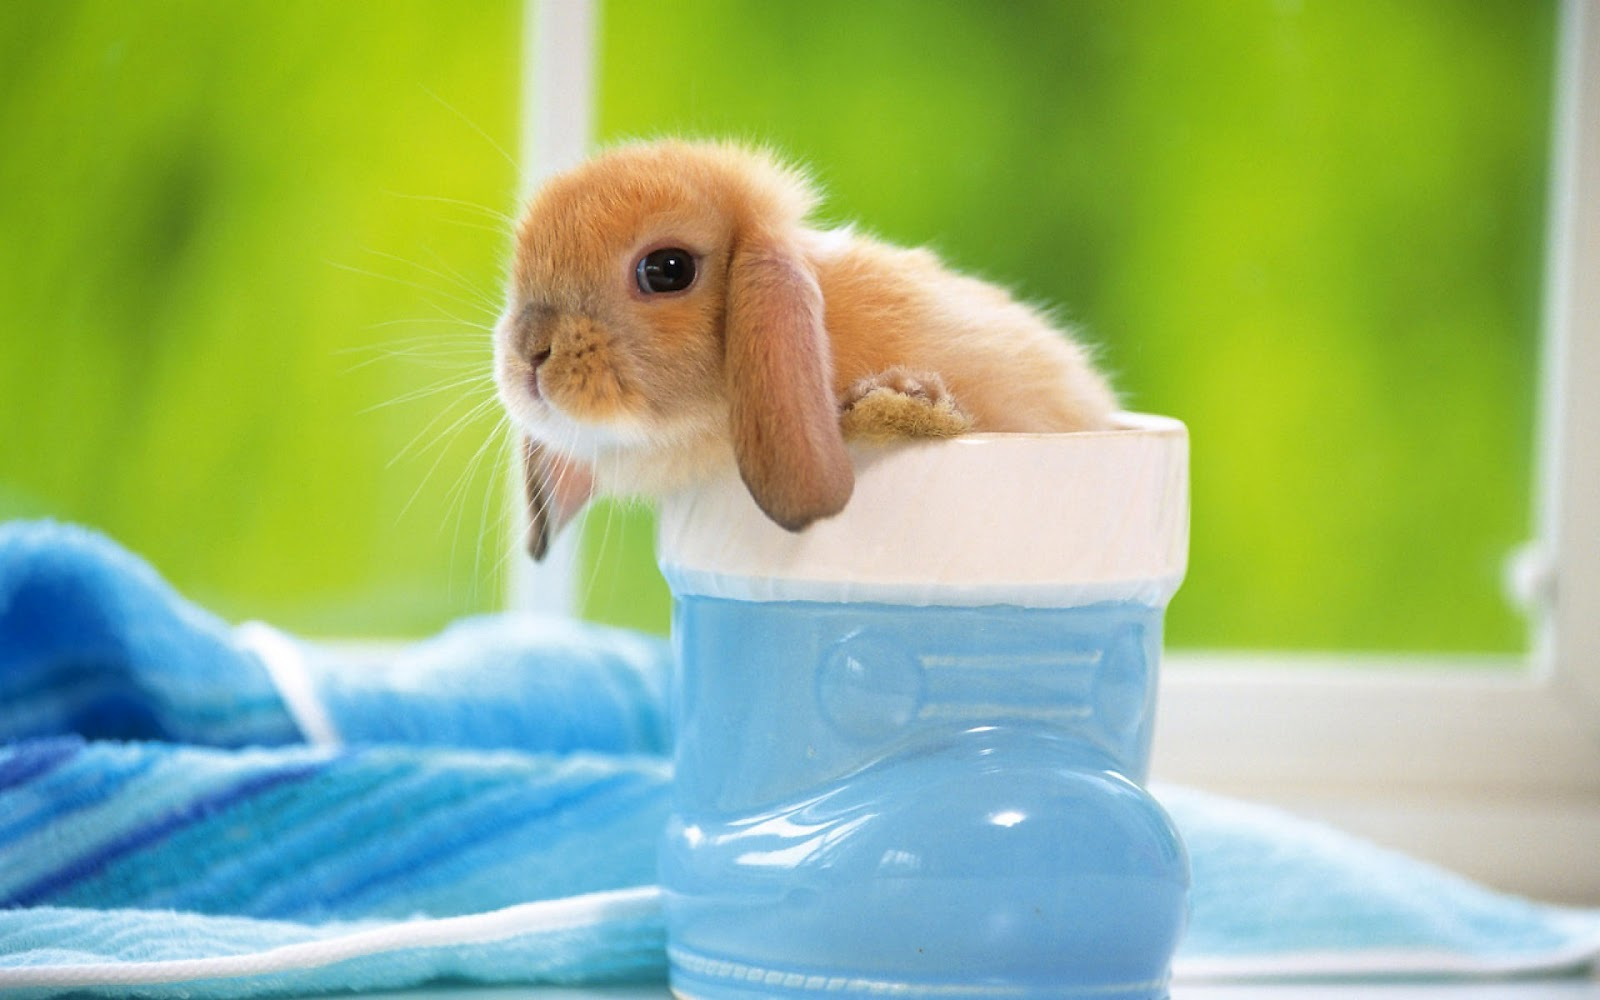 Rabbit Wallpapers Free Download Cute White Hd Desktop Wide Images